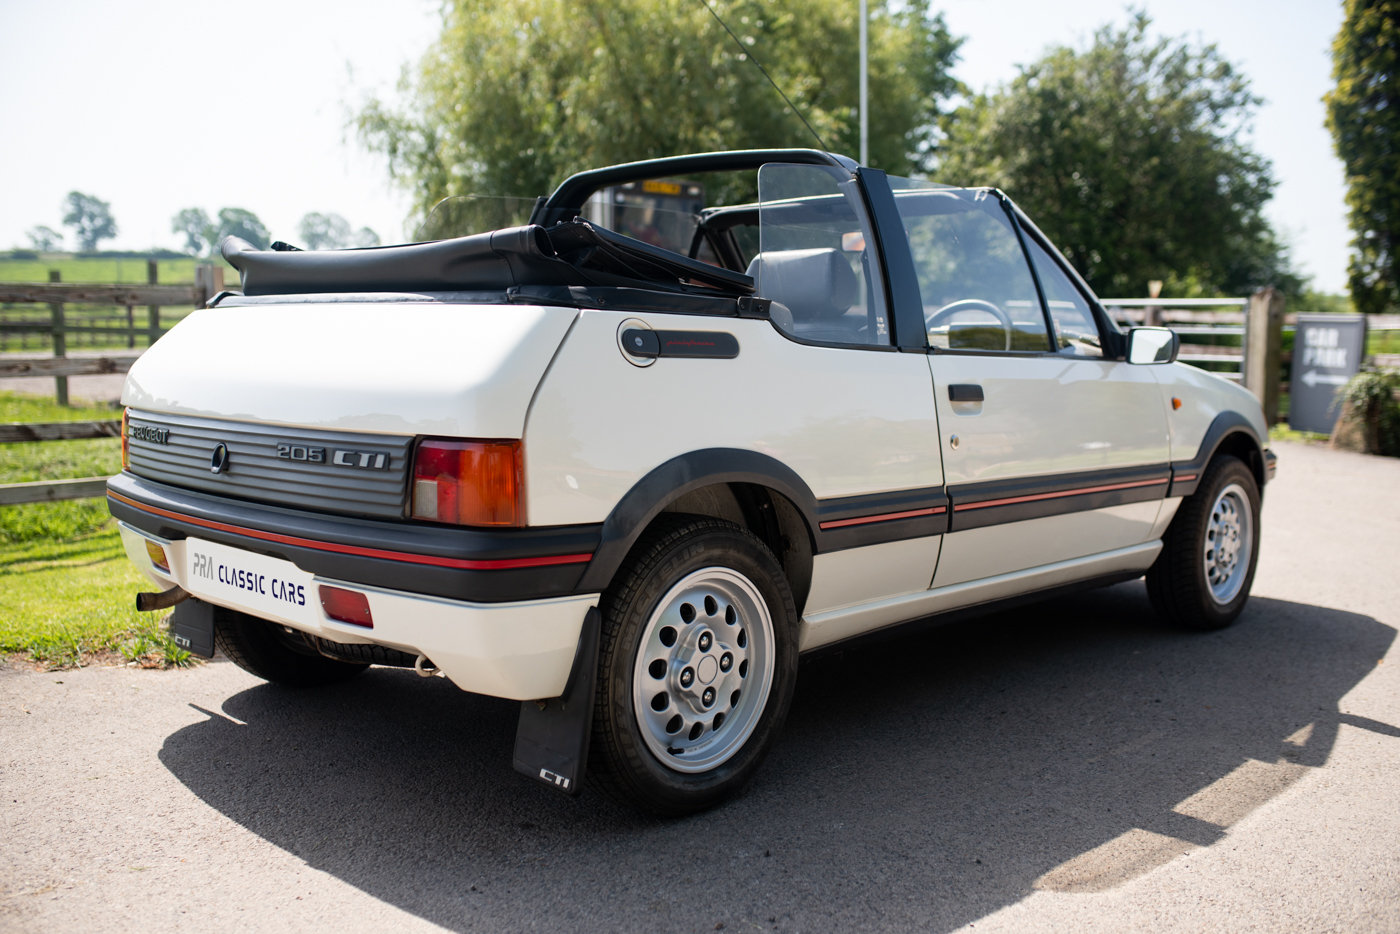 1988 Peugeot 205 CTI 1.6 Convertible For Sale (picture 3 of 6)